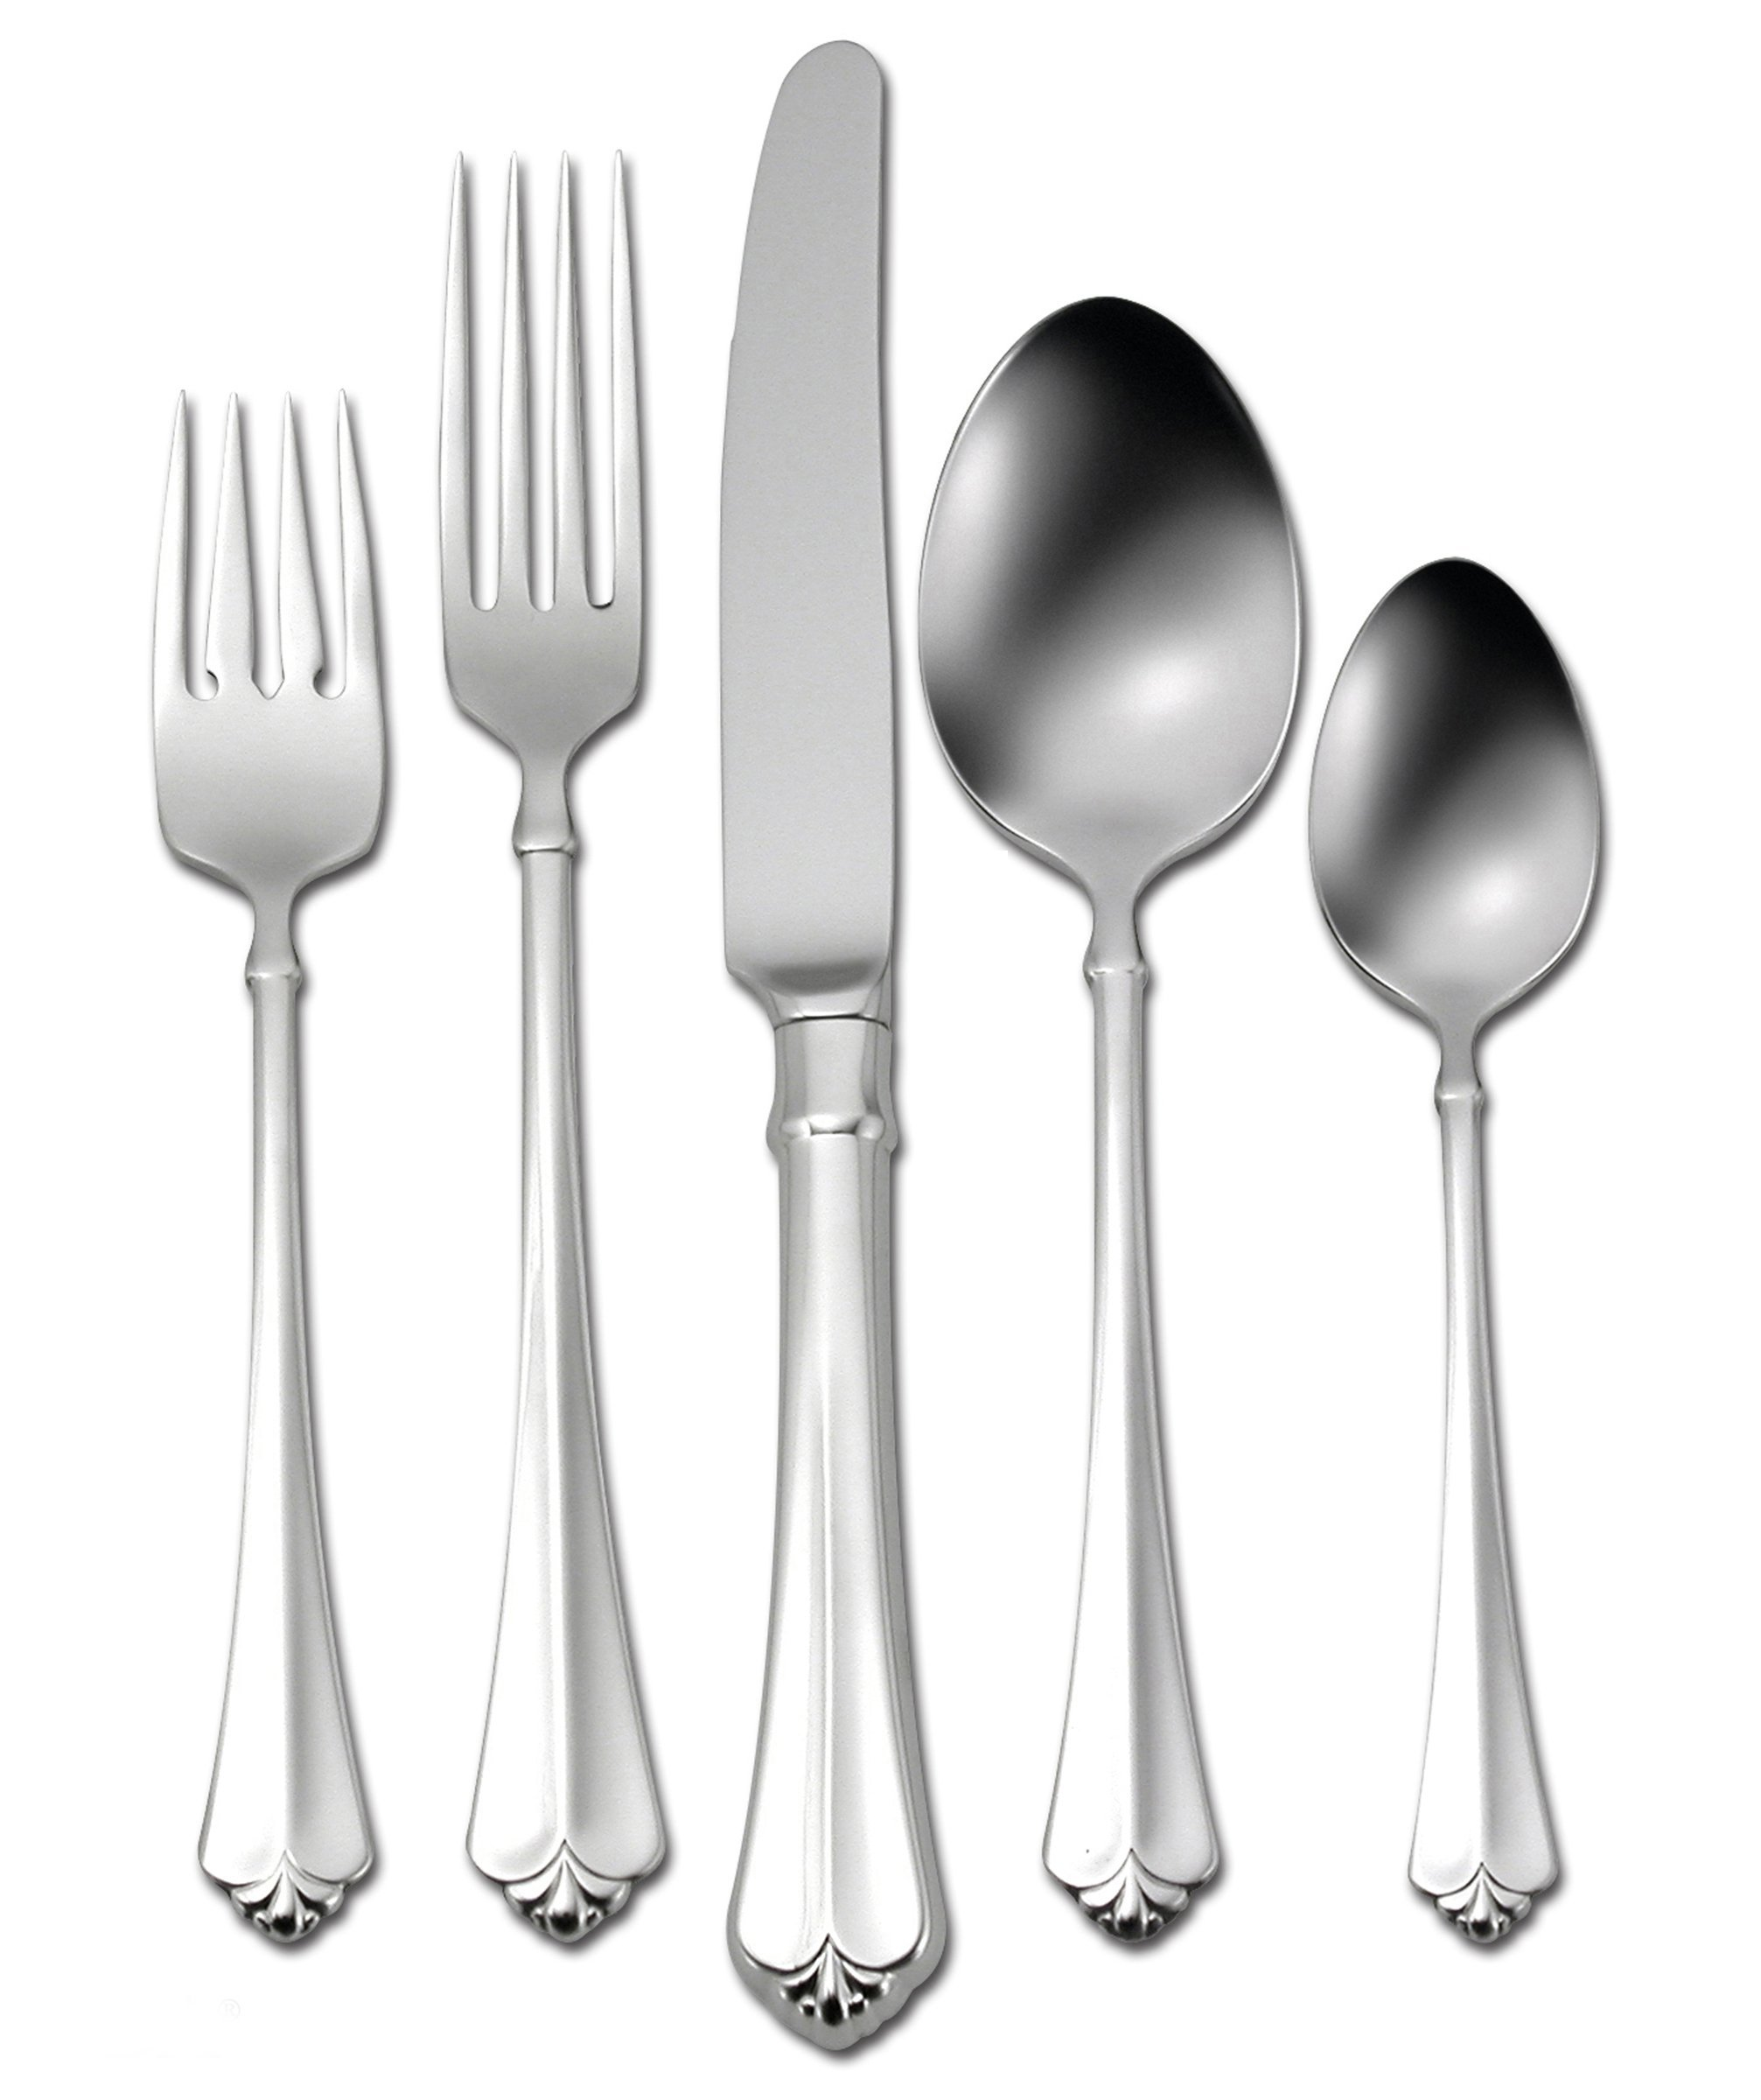 Oneida Julliard 20-Piece Flatware Set, Service for 4 - 20-piece flatware set with service for 4. Set includes 4 each: place knife, place fork, place spoon, salad/dessert fork, and teaspoon 18/10 stainless steel. Durable and stylish Tasteful. Transitional. Timeless. A traditional pattern with modern appeal, Juilliard is noted for its sculptured fleur-de-lis detail and gracefully stylized handle. This popular design works well with many different dinnerware designs. - kitchen-tabletop, kitchen-dining-room, flatware - 81AIJ oBPEL -